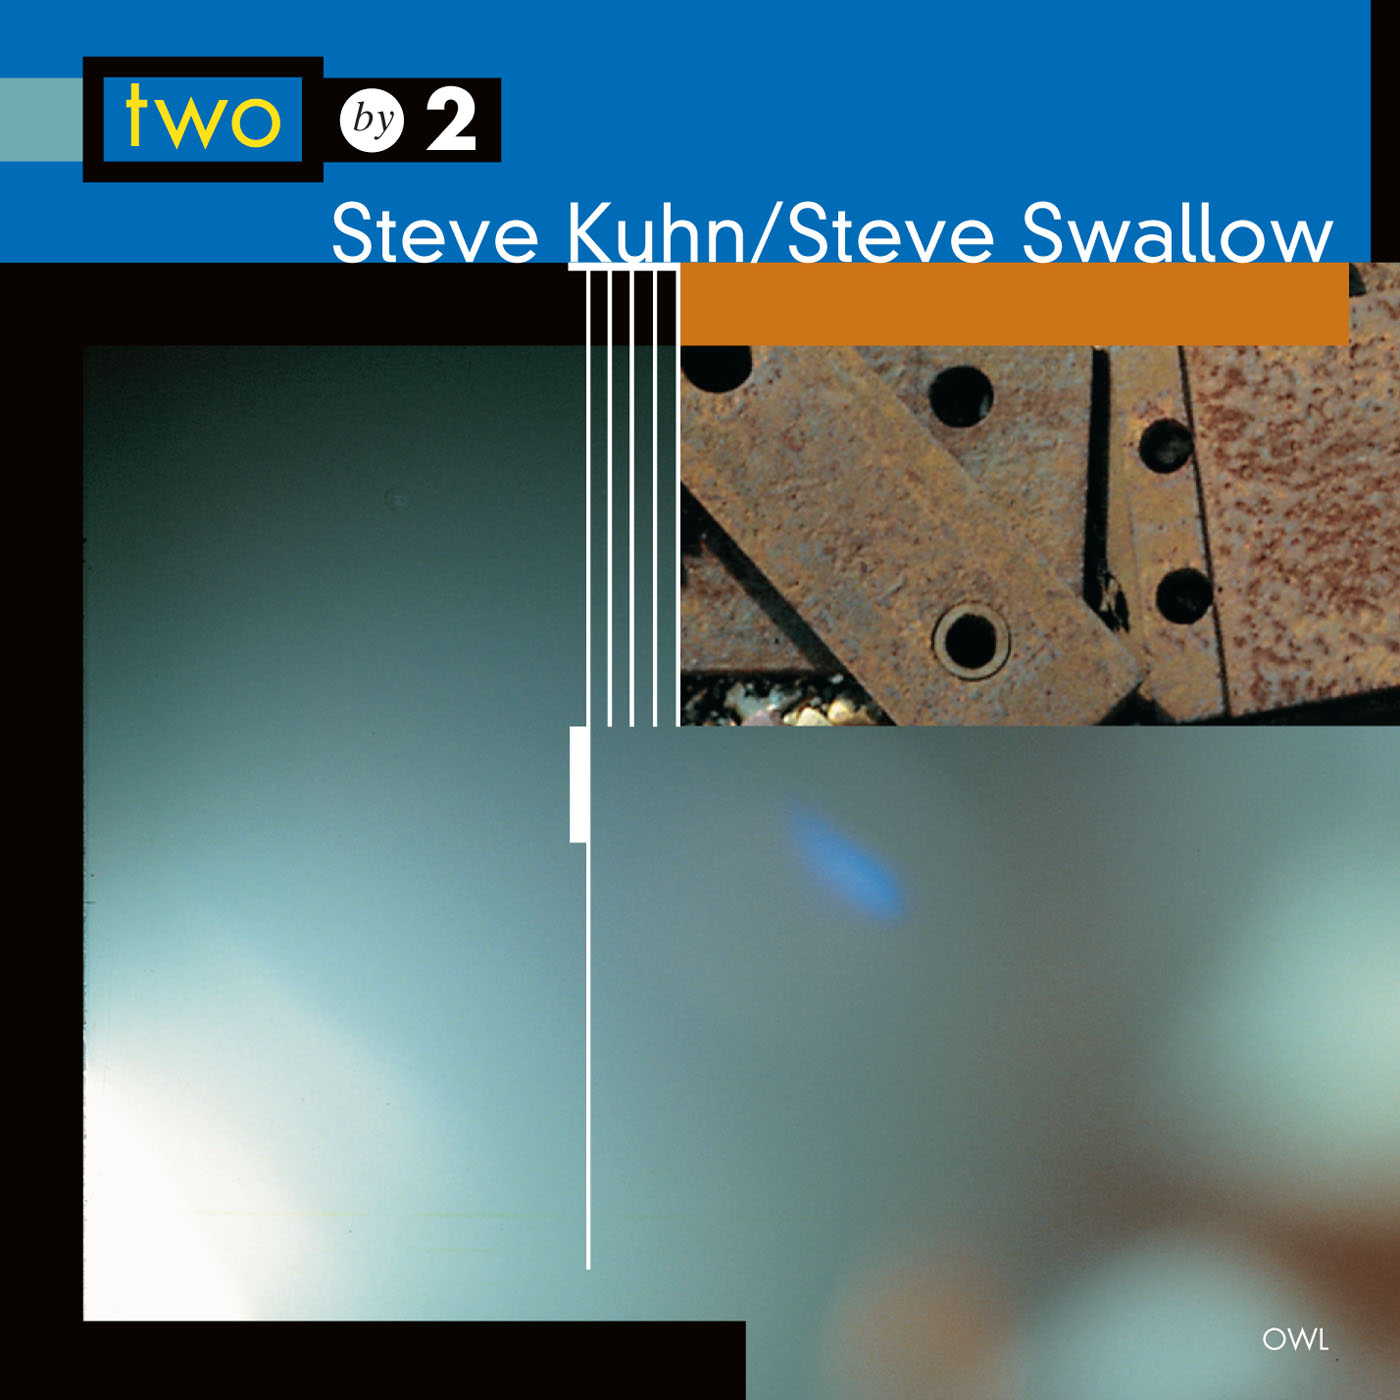 Two by 2 by steve Kuhn & Steve Swallow cover